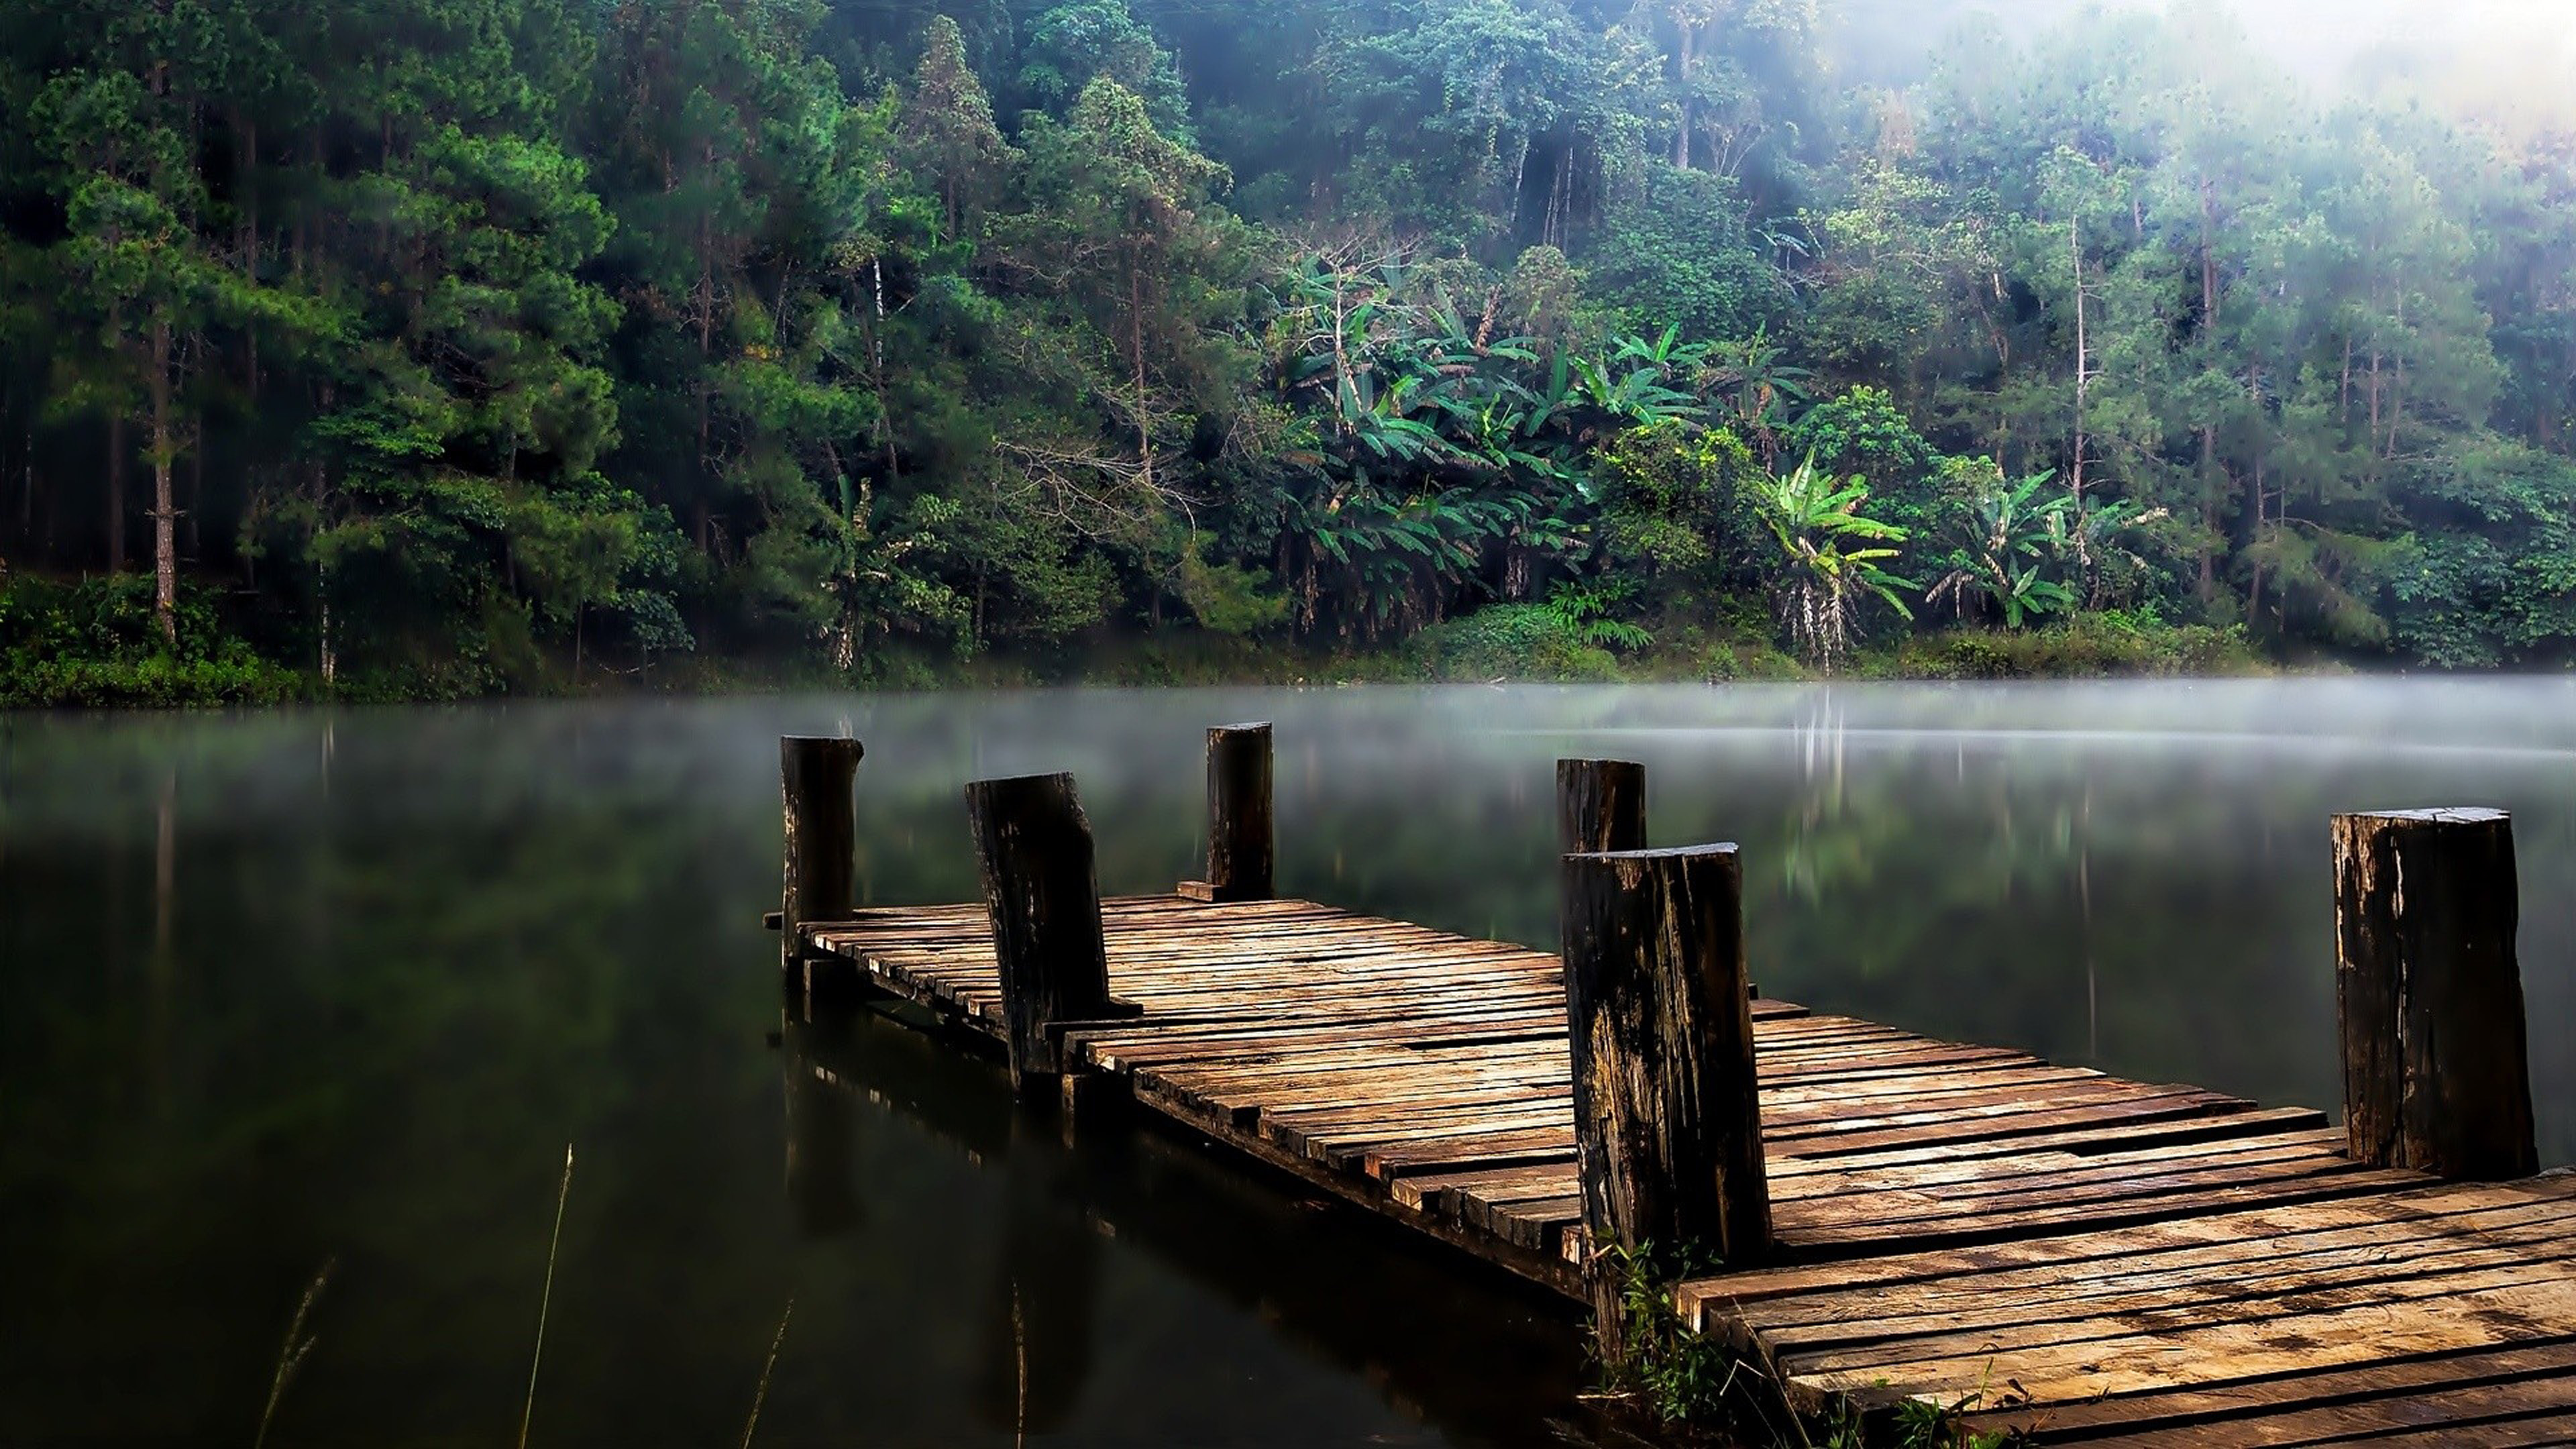 3d Illusion Wallpapers For Desktop Jungle Lake Bridge Evaporation Fog Hd Wallpaper